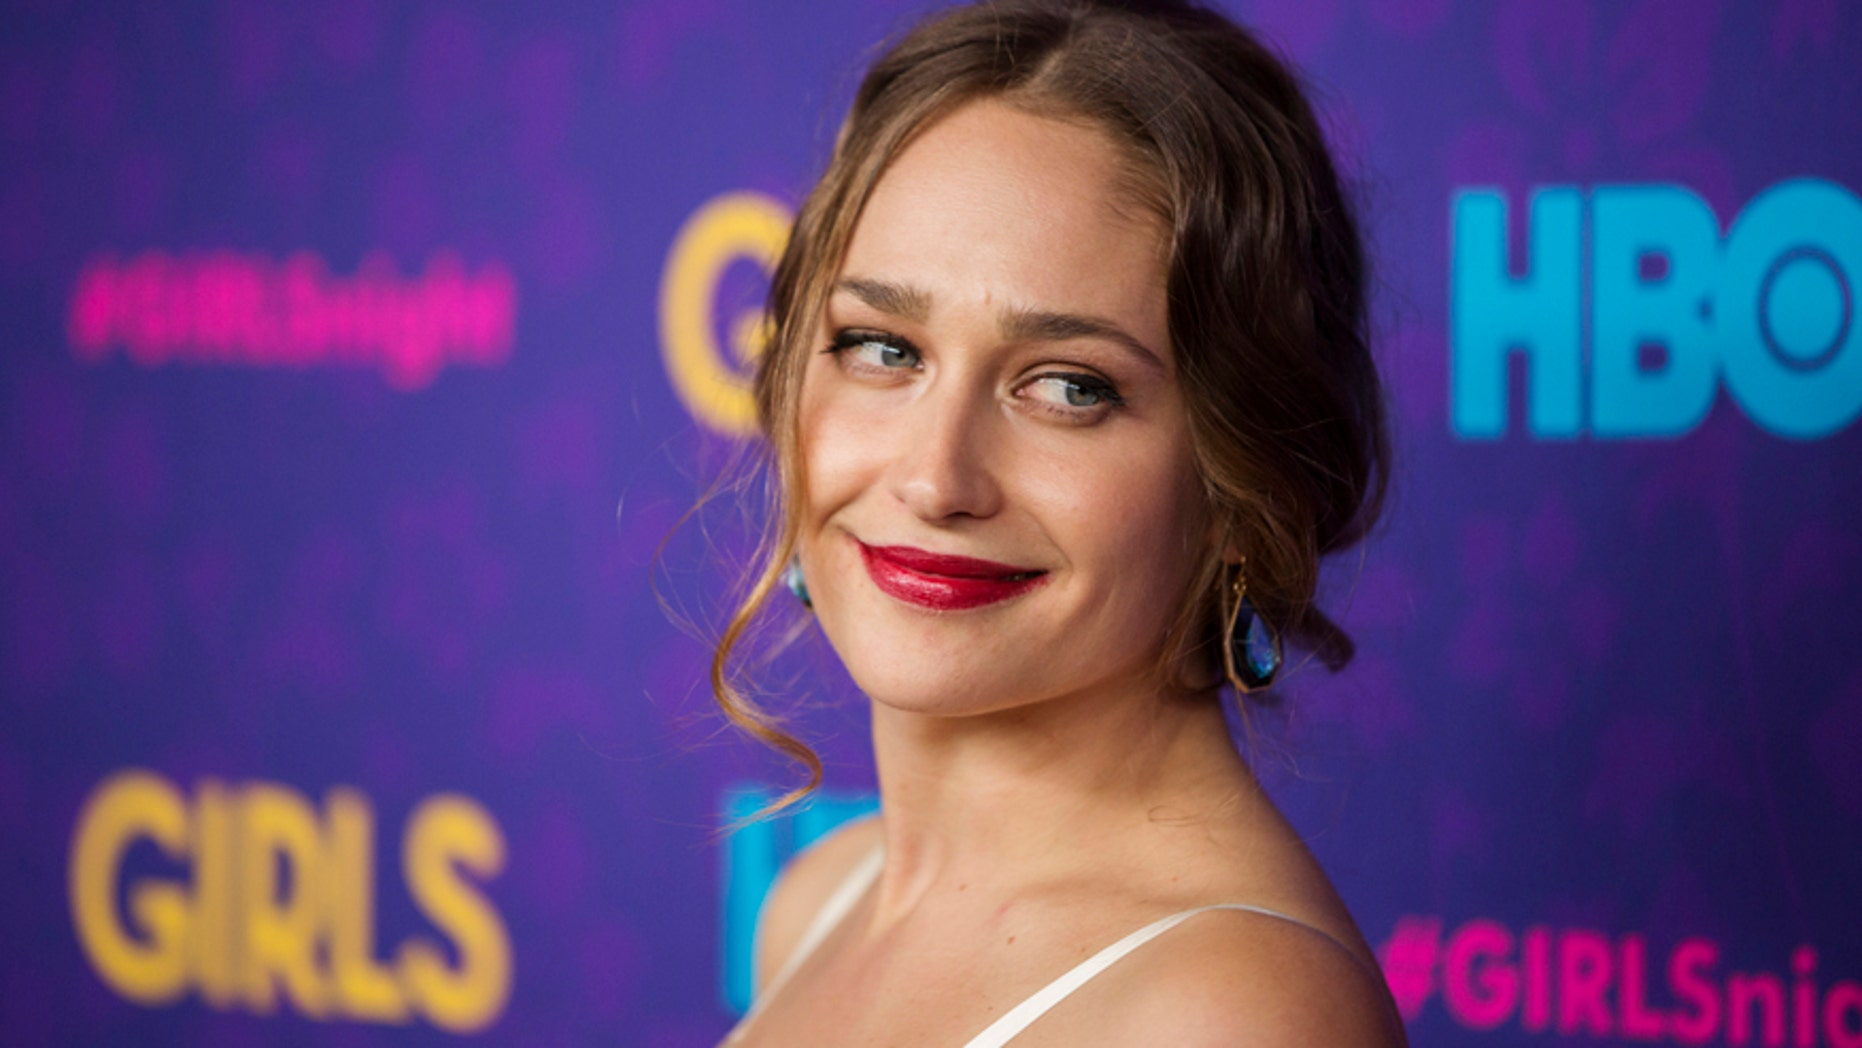 Cast member of the HBO show Girls Jemima Kirke arrives for the premiere of the third season of the show in New York January 6, 2014.